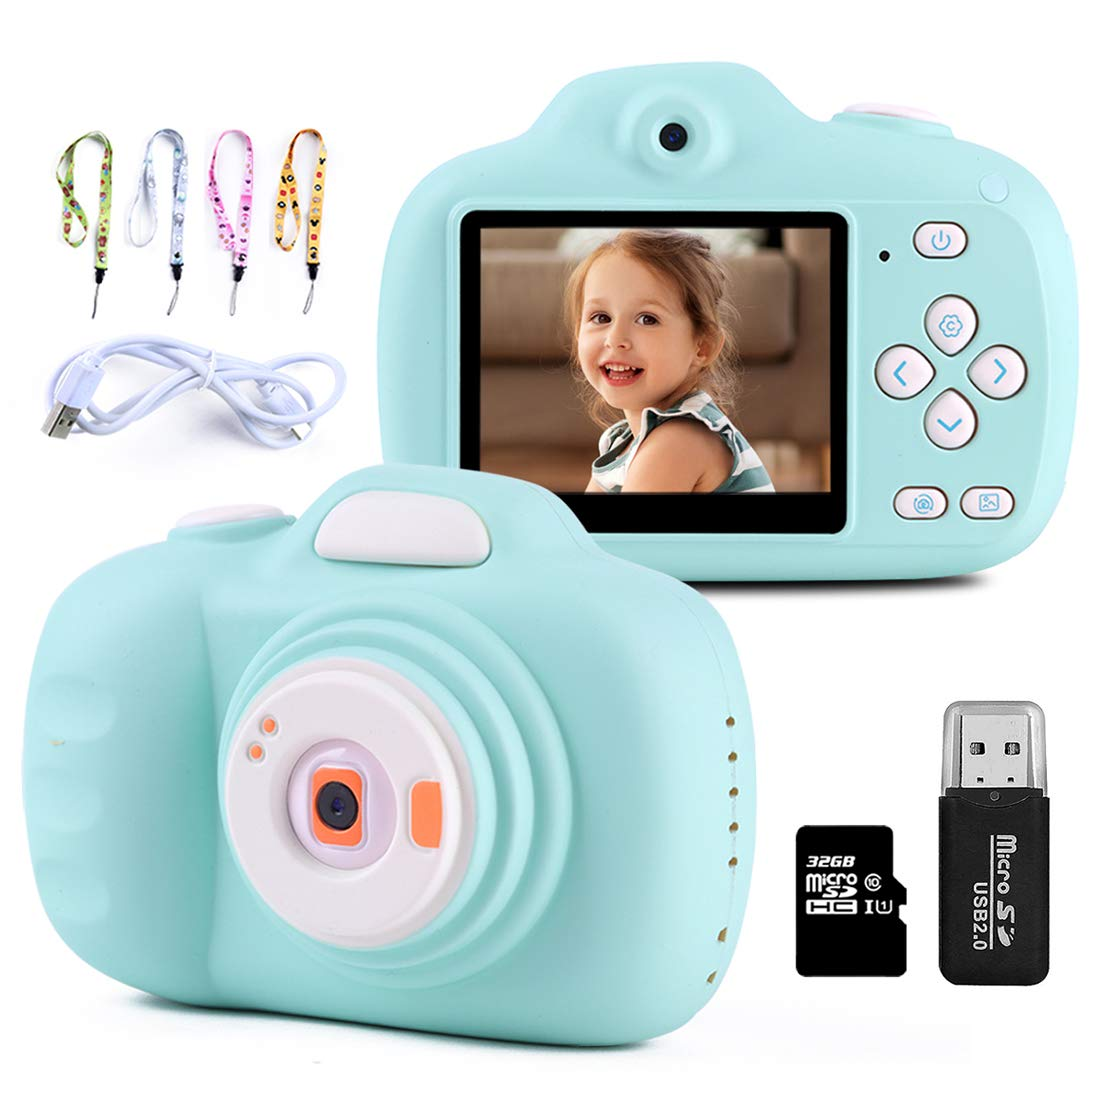 MARUMINE Kids Camera, 12.0MP Digital Camera with Dual Lens, 1080P HD Video, 2.3 Inch LCD Screen, 32GB SD Card Included, Selfie Camera for 3-10 Years Old Kids Boys and Girls (Blue)